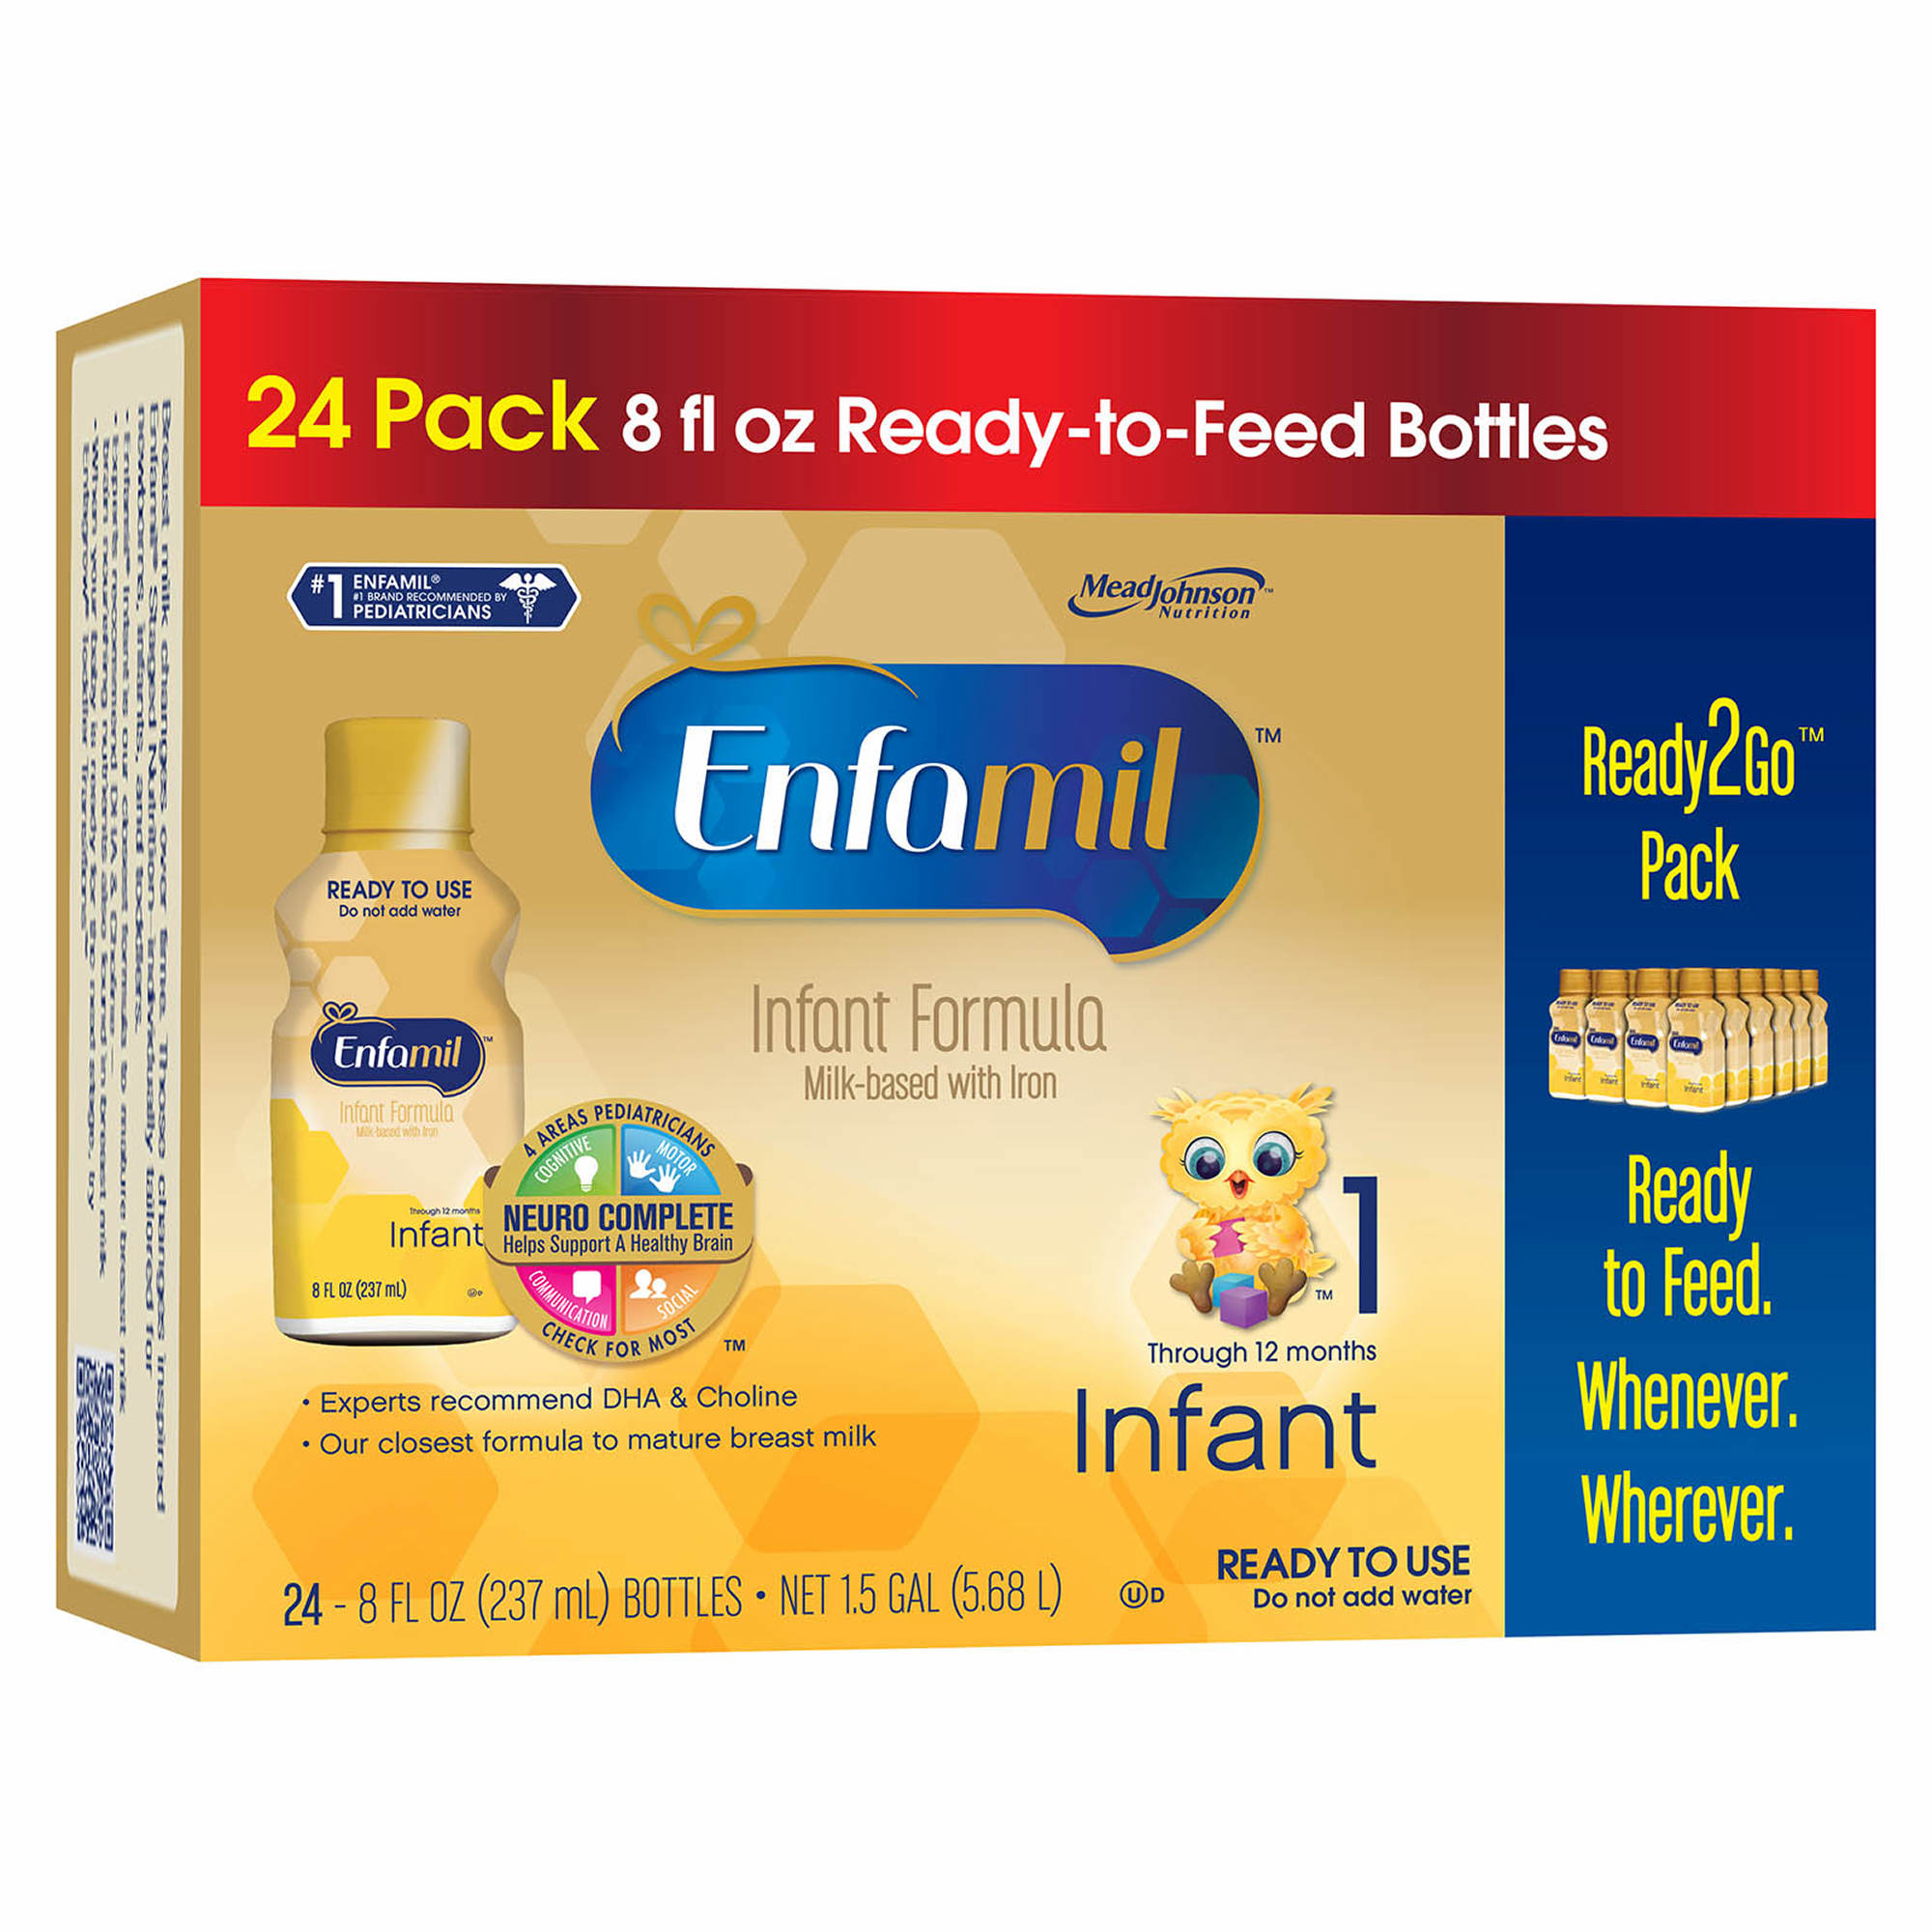 Enfamil Premium Ready-to-Use Liquid Infant Formula, 24 pk./8 fl. oz.